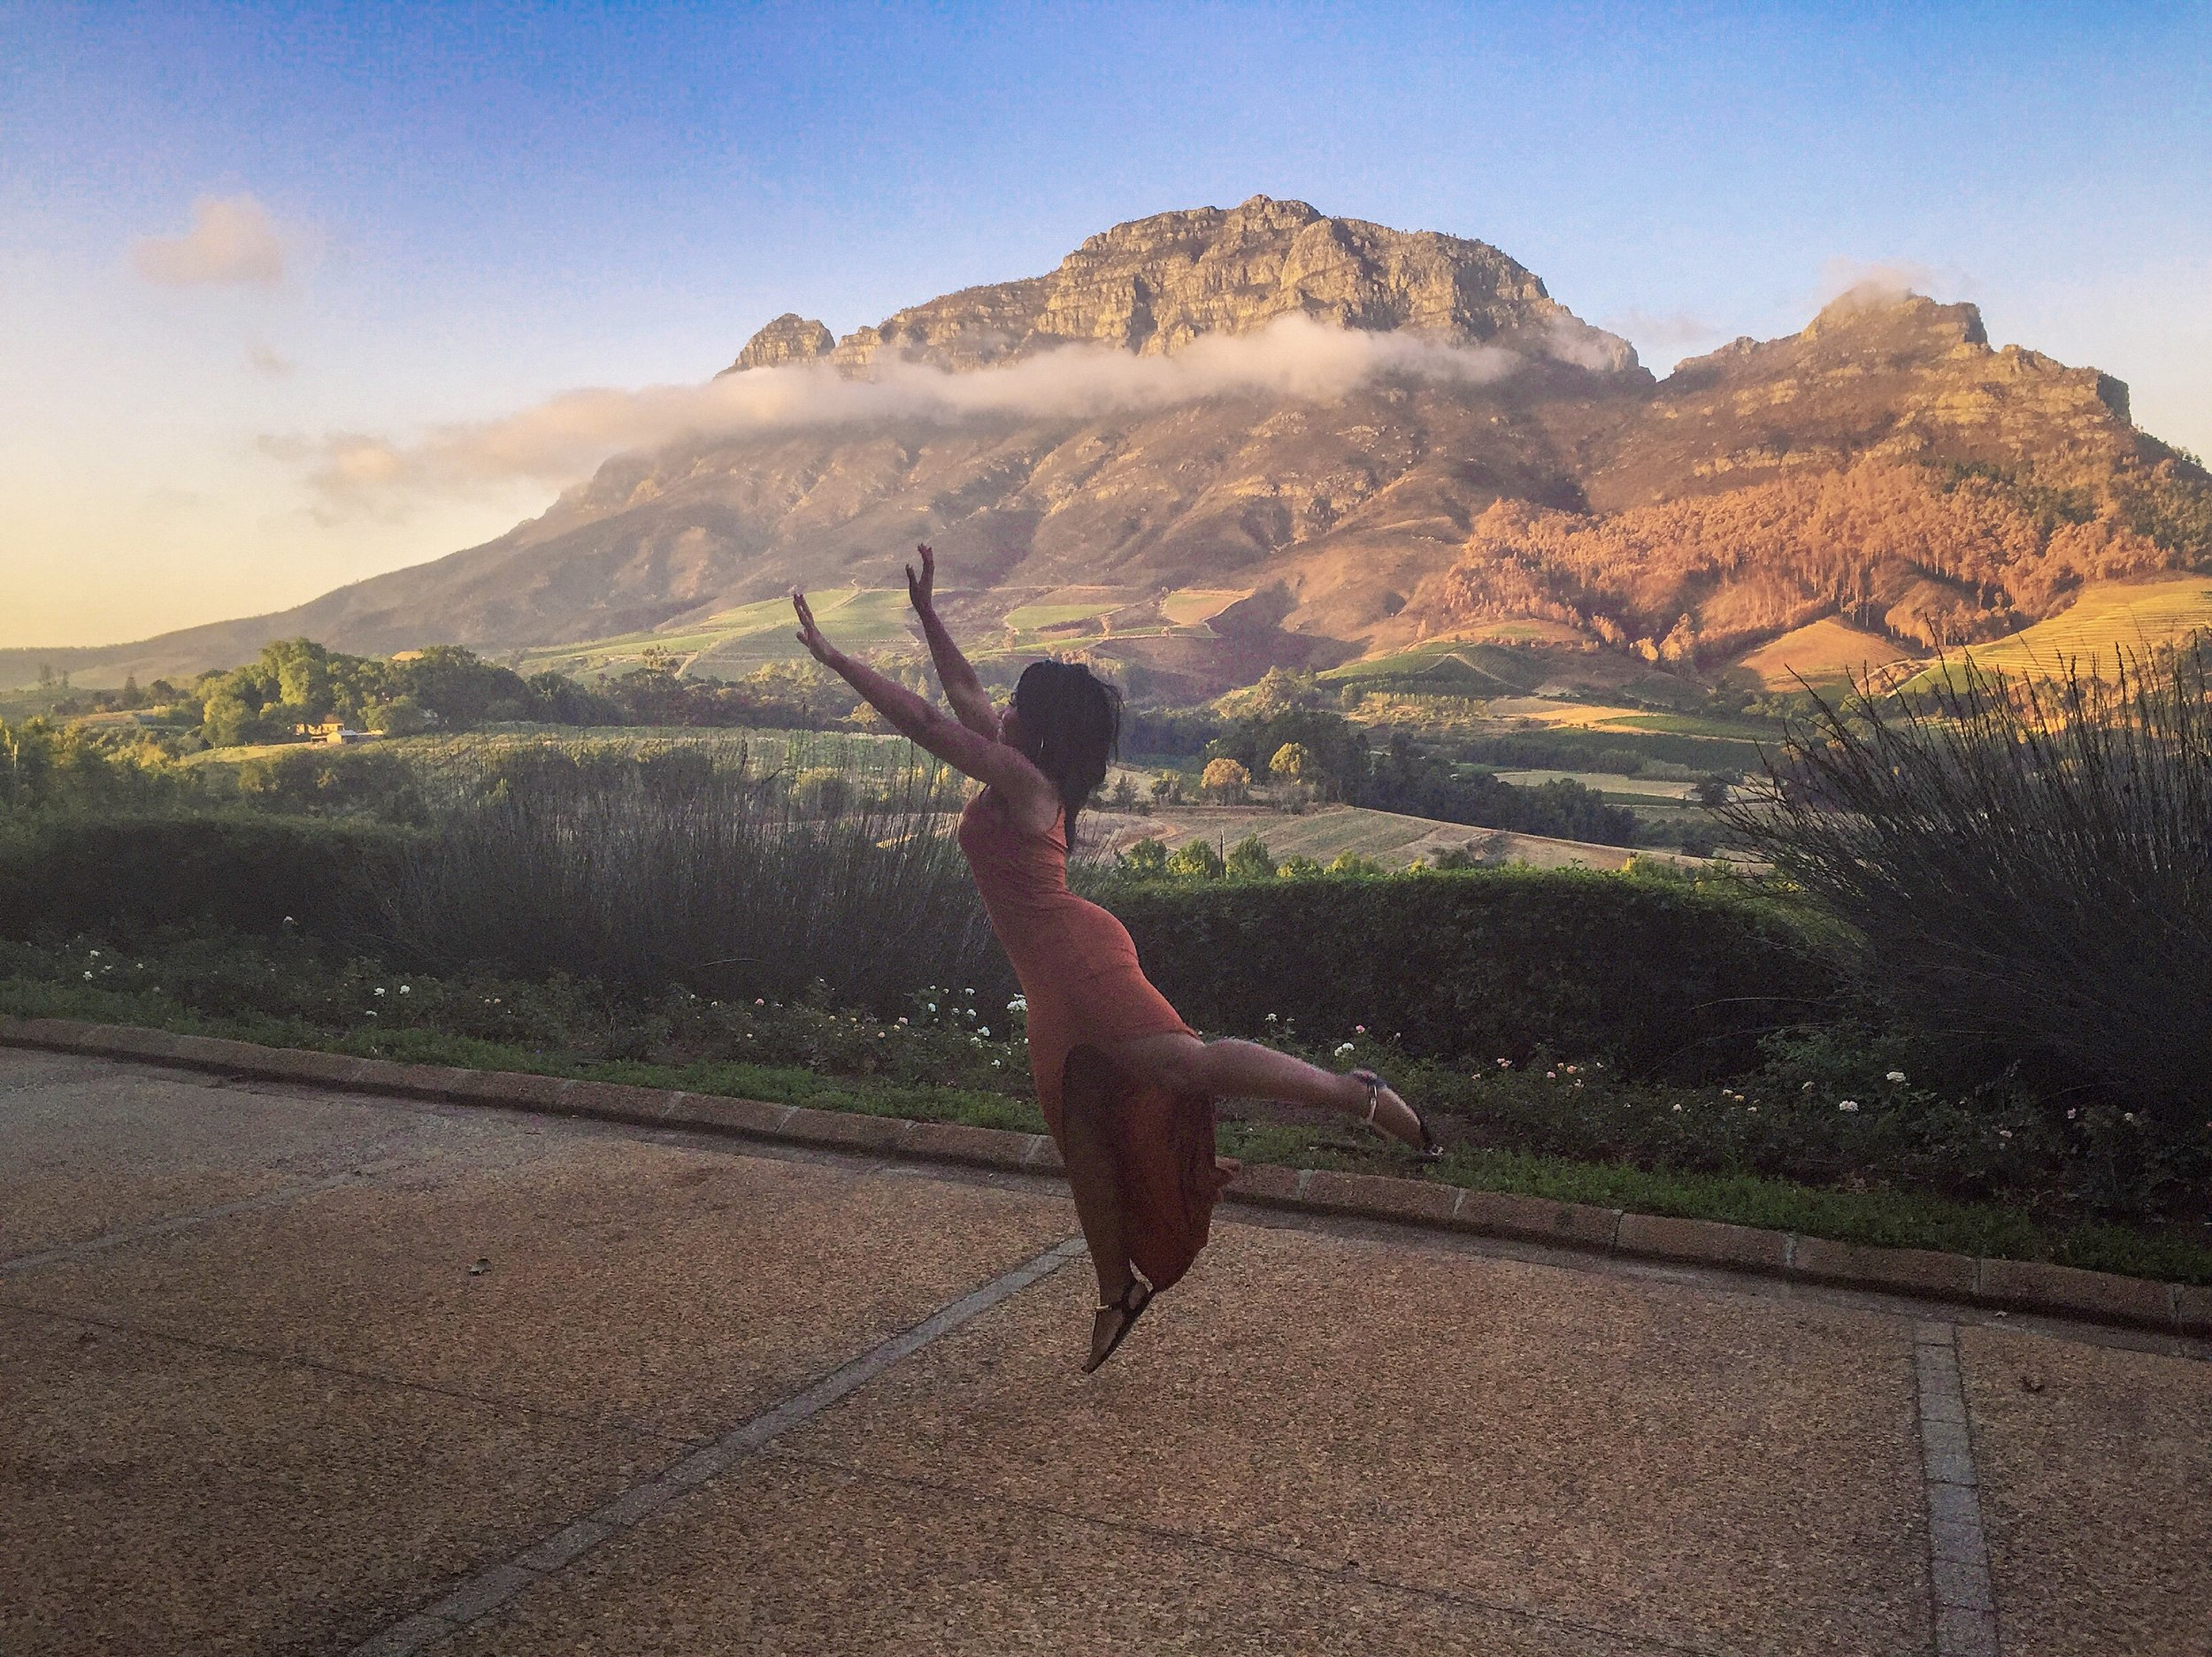 Reaching for the clouds in Stellenbosch, South Africa